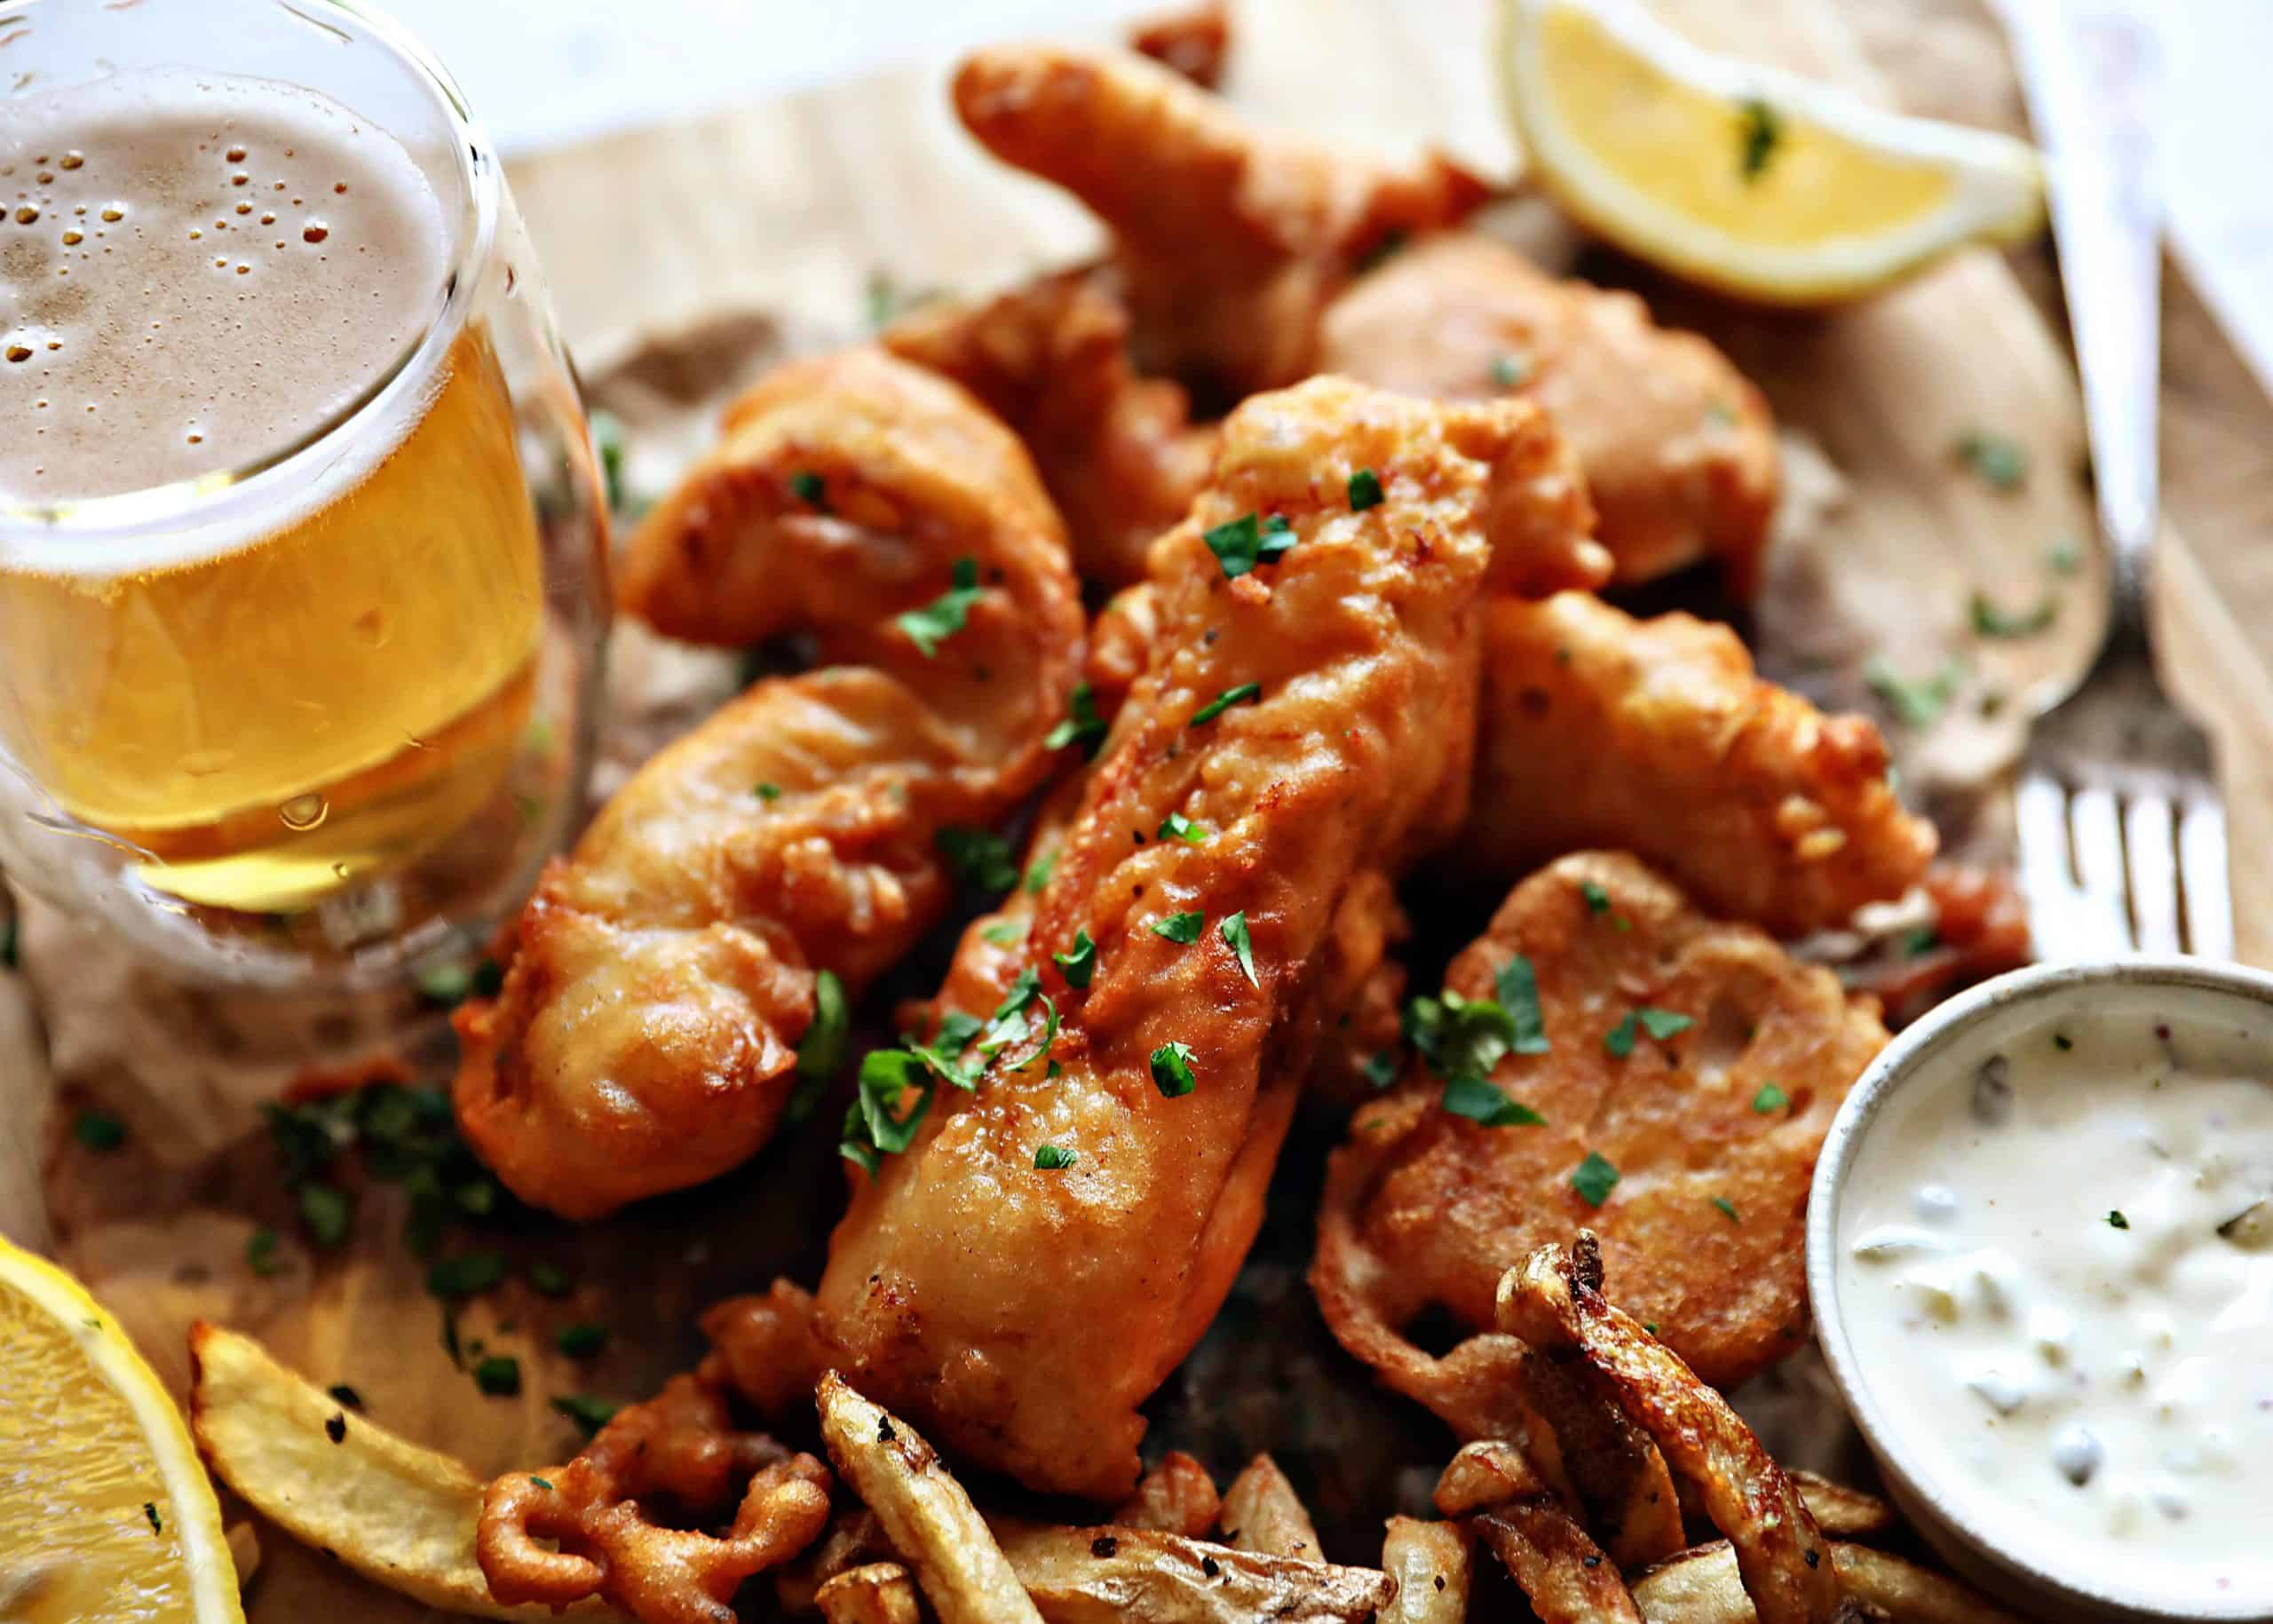 Fish and Chips with Homemade Tartar Sauce